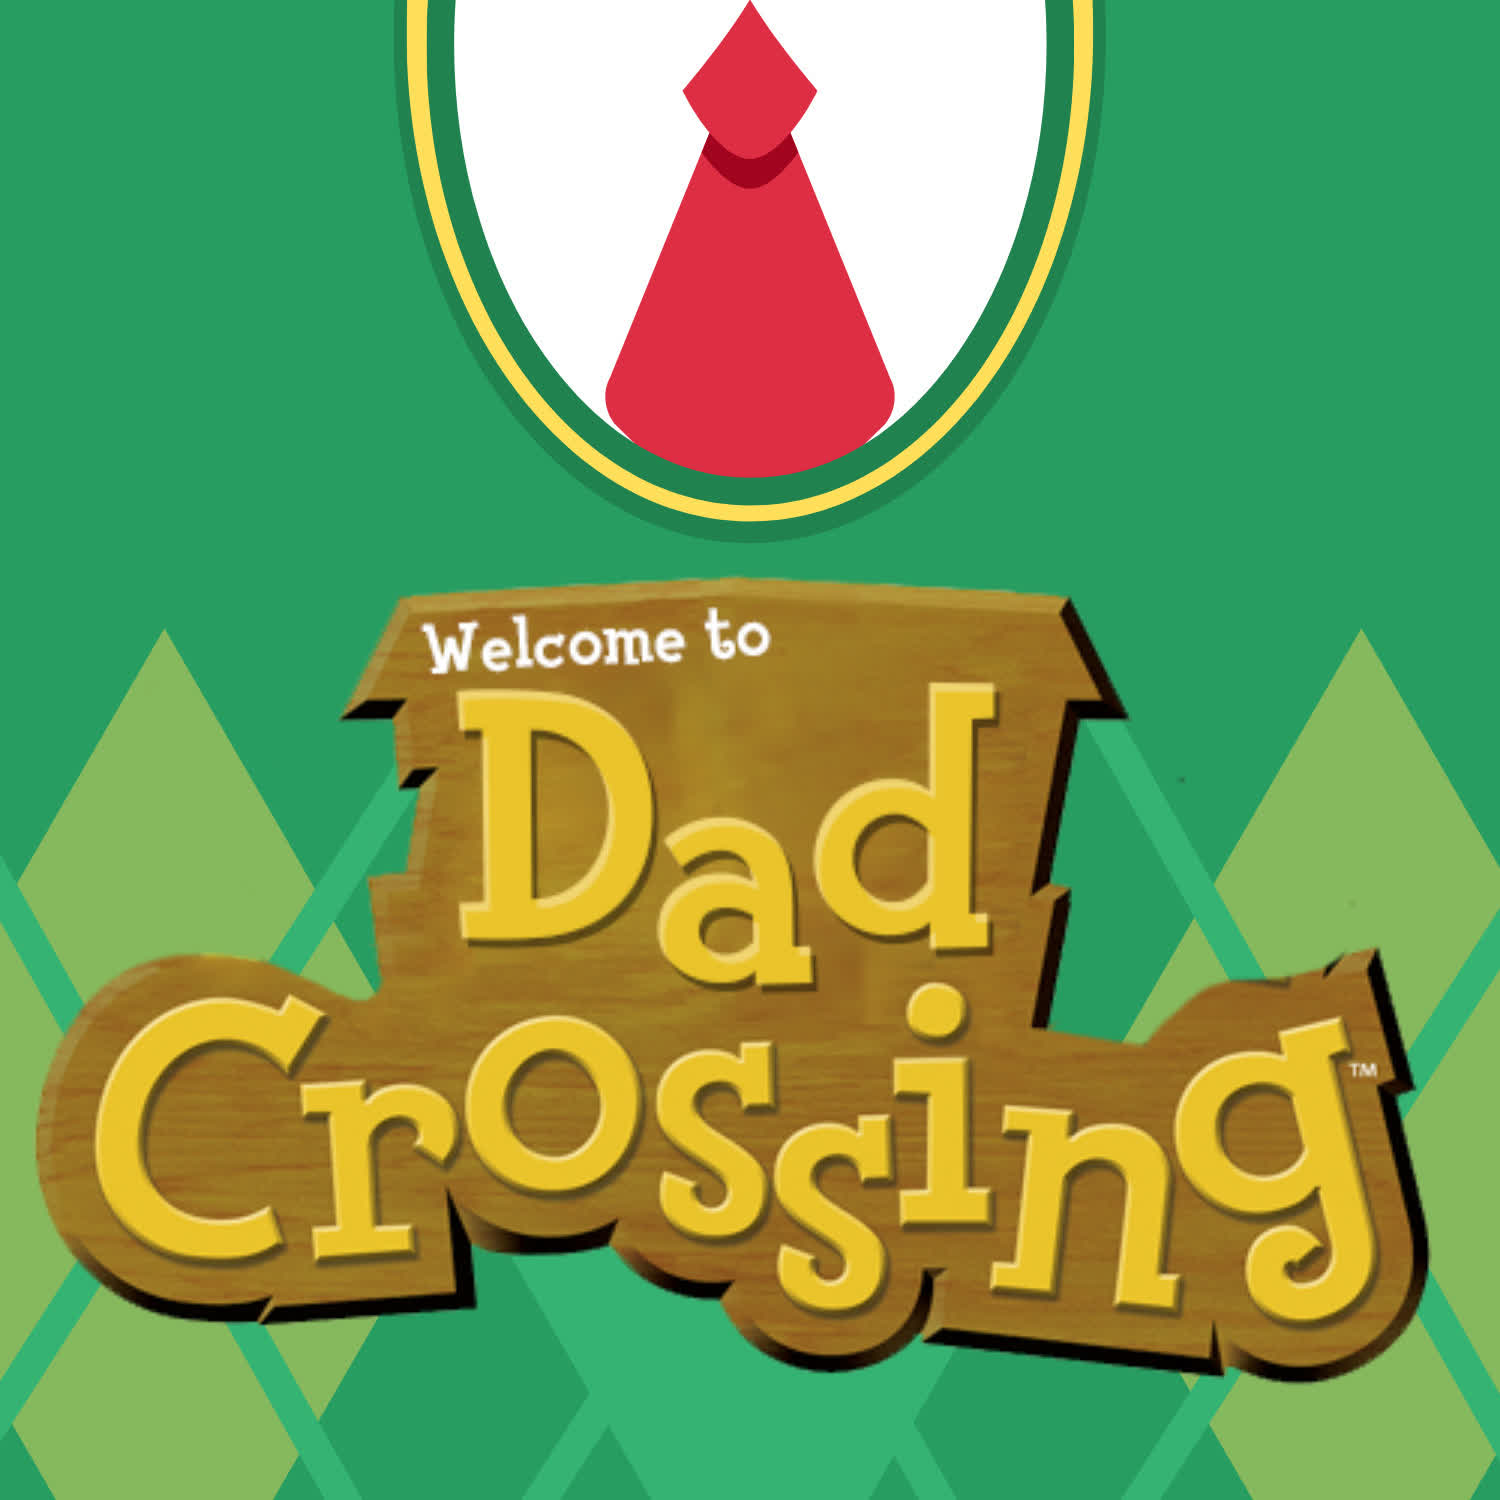 Dad Crossing #009: Wedding Bells and Blurpees Missiles